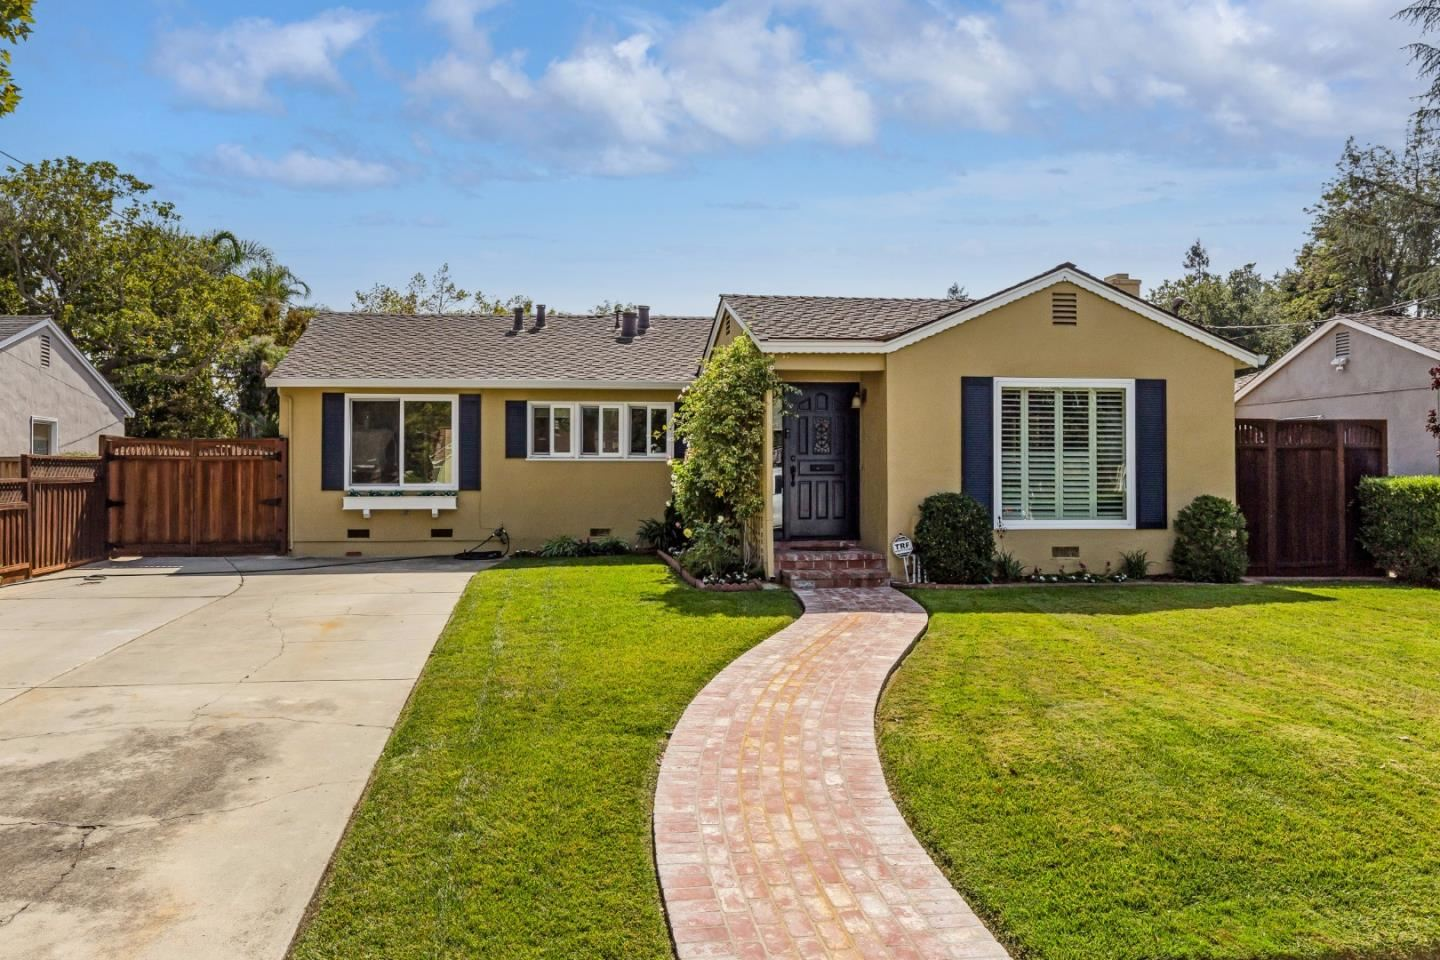 Photo for 1124 Fewtrell Drive, CAMPBELL, CA 95008 (MLS # ML81864435)